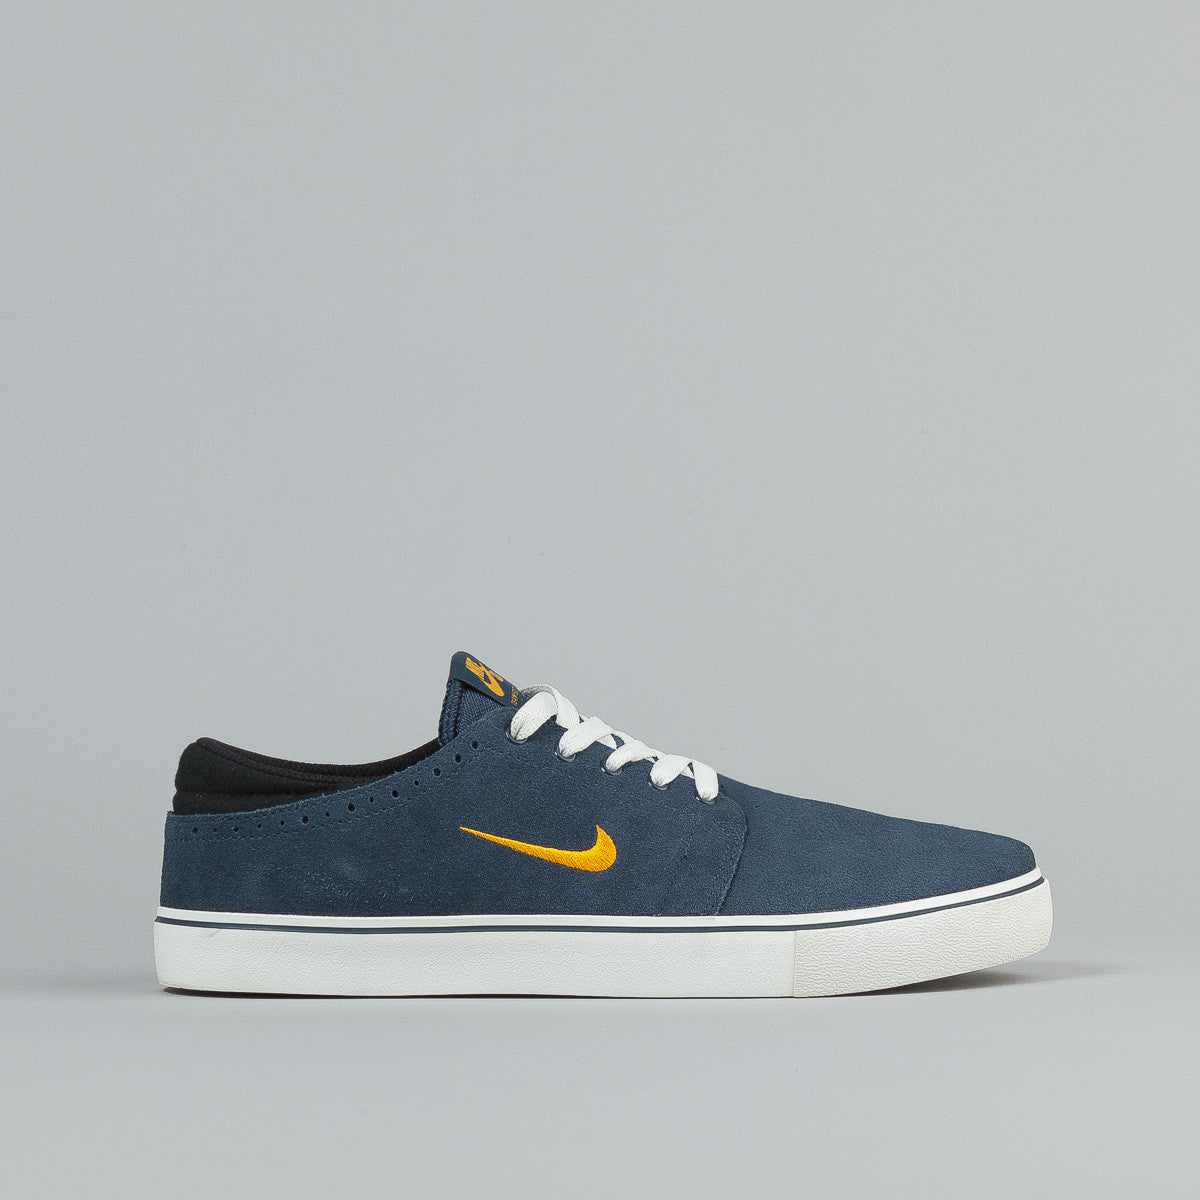 Nike SB Team Edition 2 Shoes